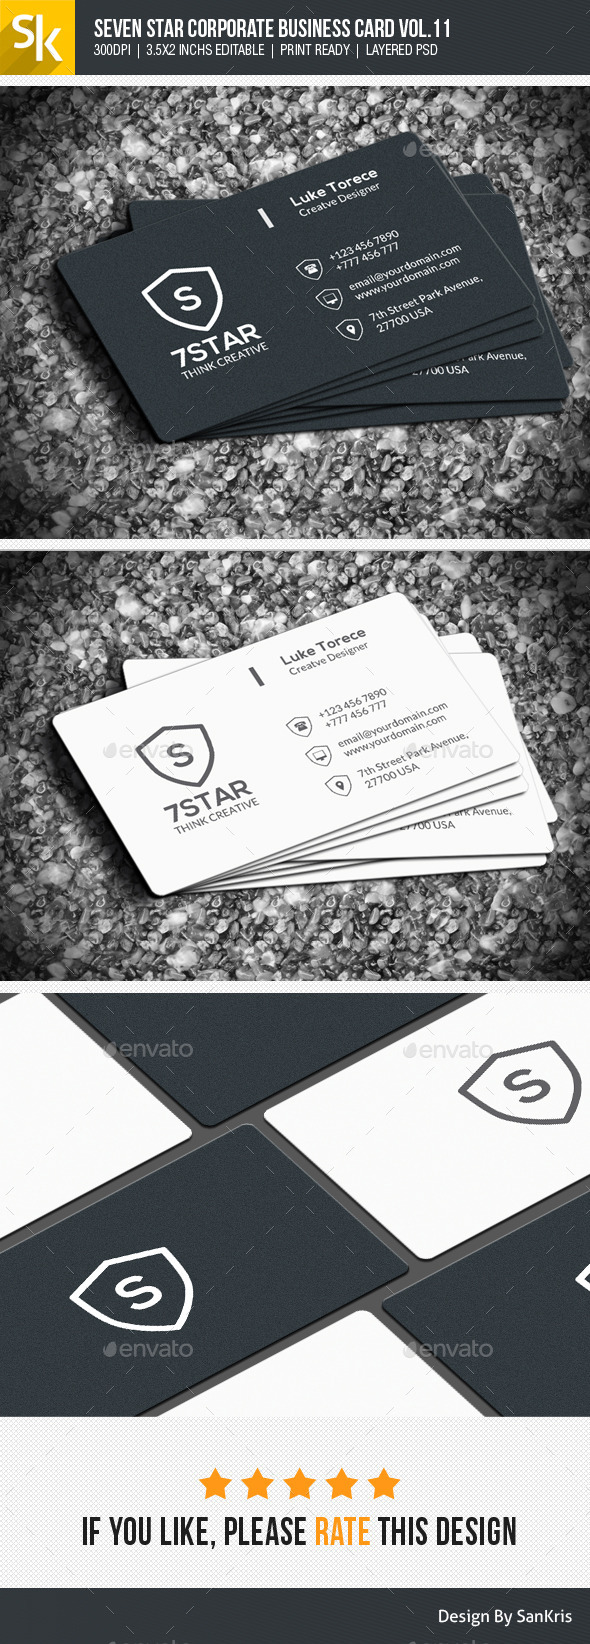 Seven Star Corporate Business Card Vol.11 - Corporate Business Cards